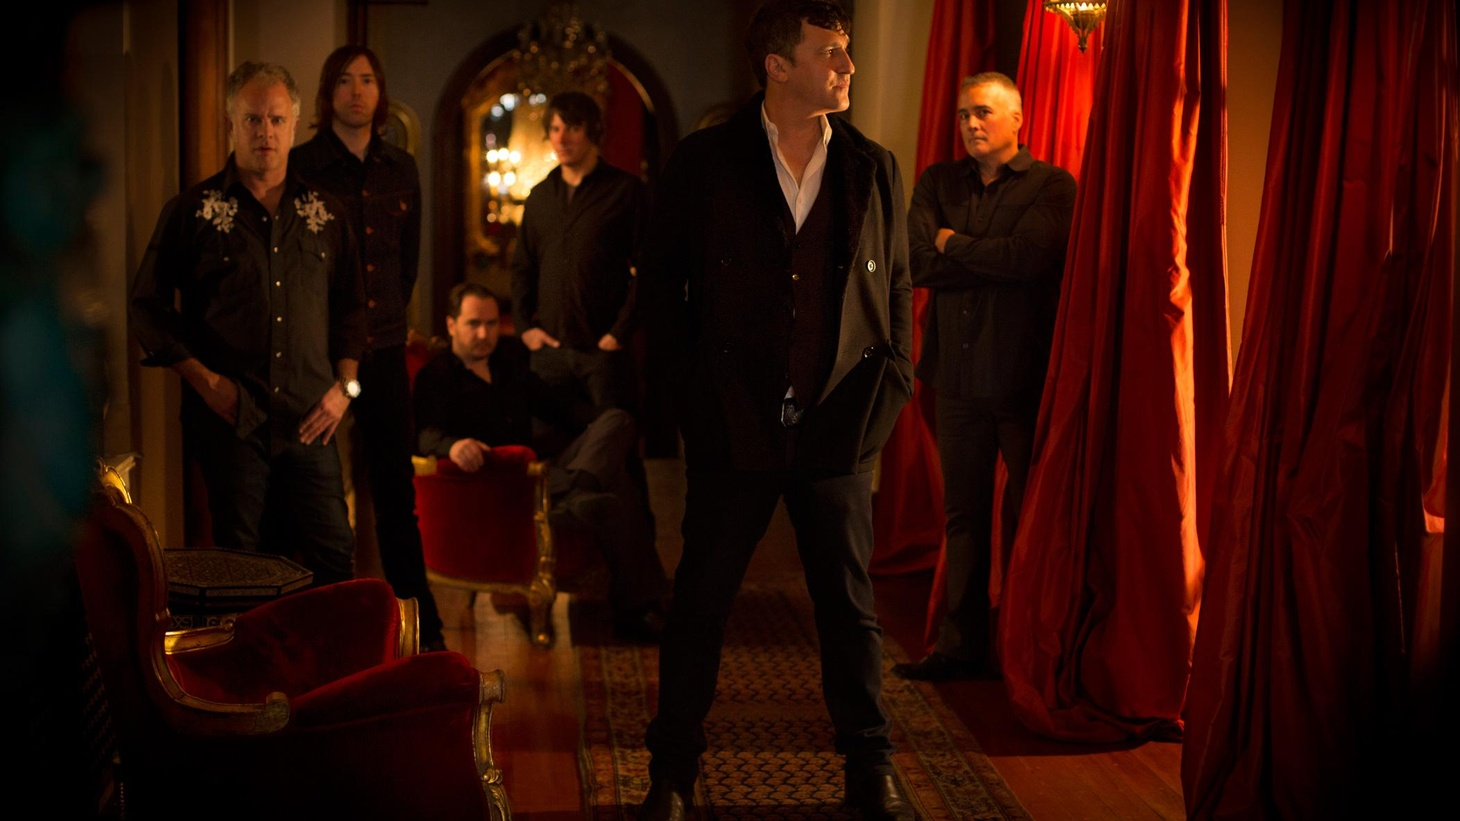 The Afghan Whigs have released their first record in 16 years. Frontman Greg Dulli and his new band mates capture the raw power that makes them great.